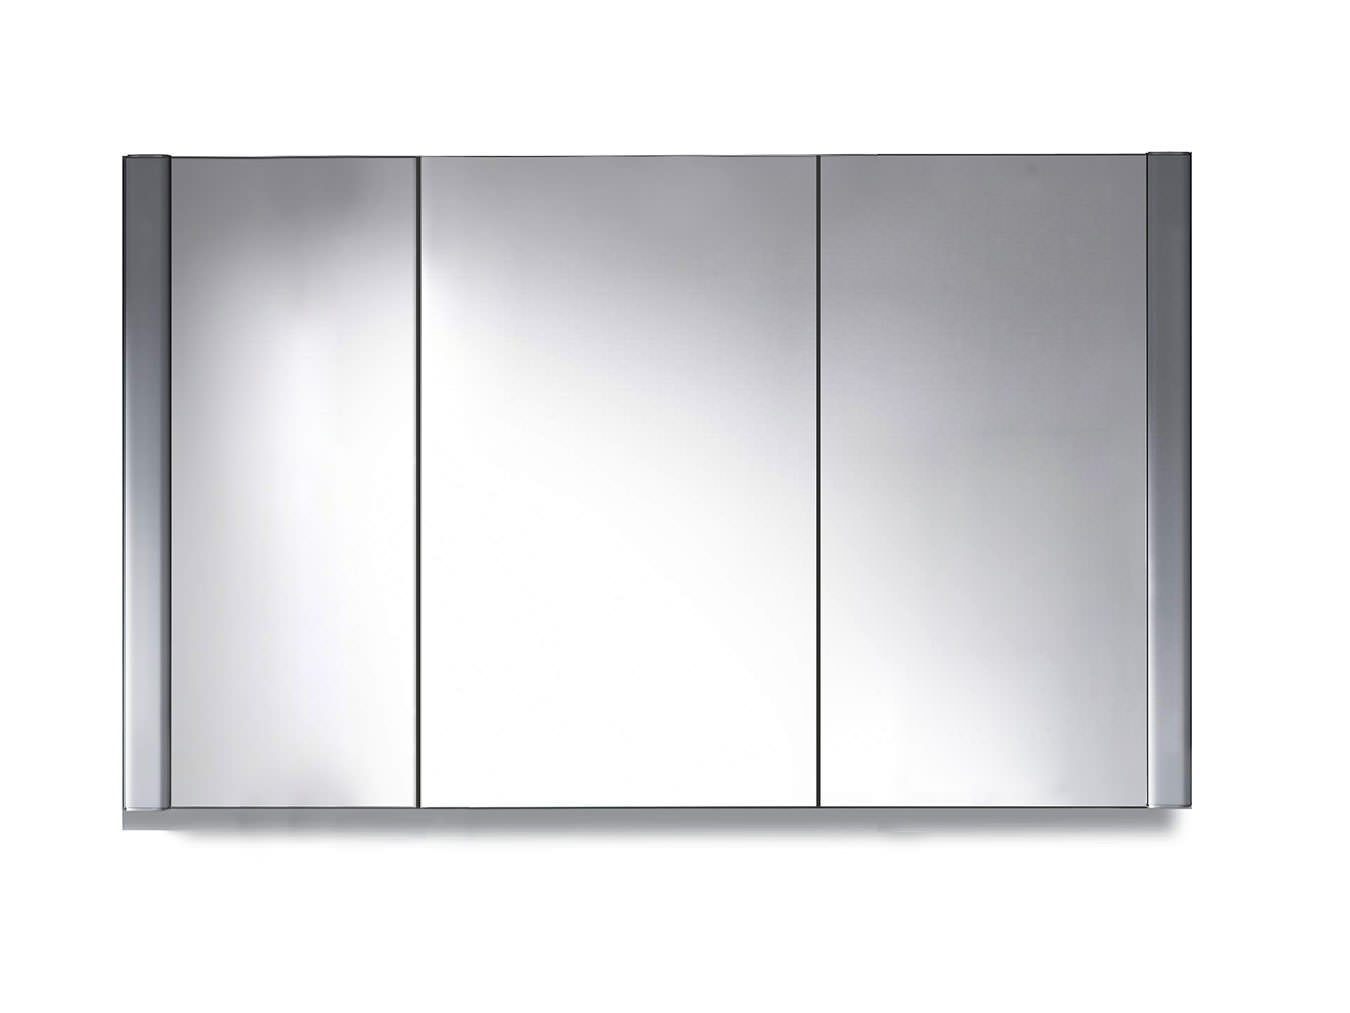 Duravit 1200 X 660mm 3 Door Mirror Cabinet